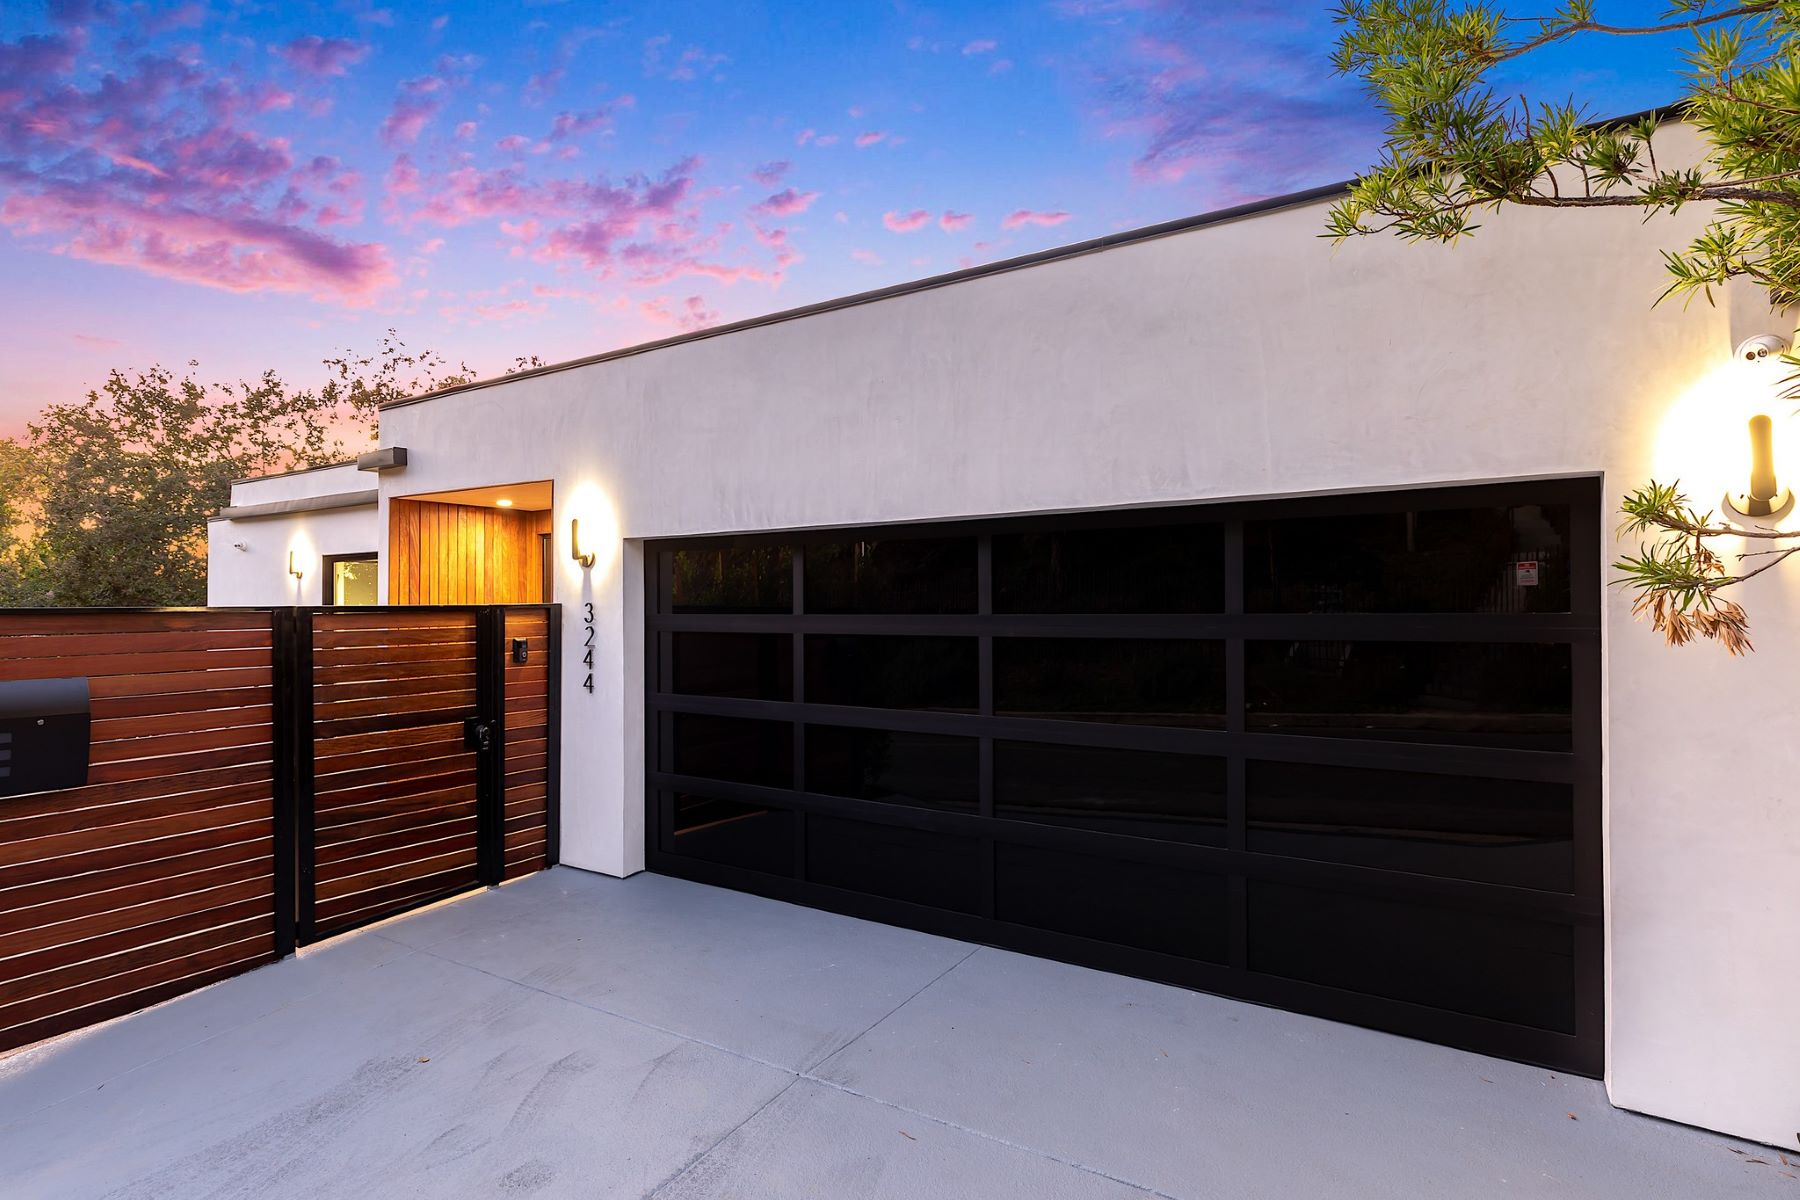 Single Family Homes for Sale at 3244 Wrightwood Dr Studio City, California 91604 United States